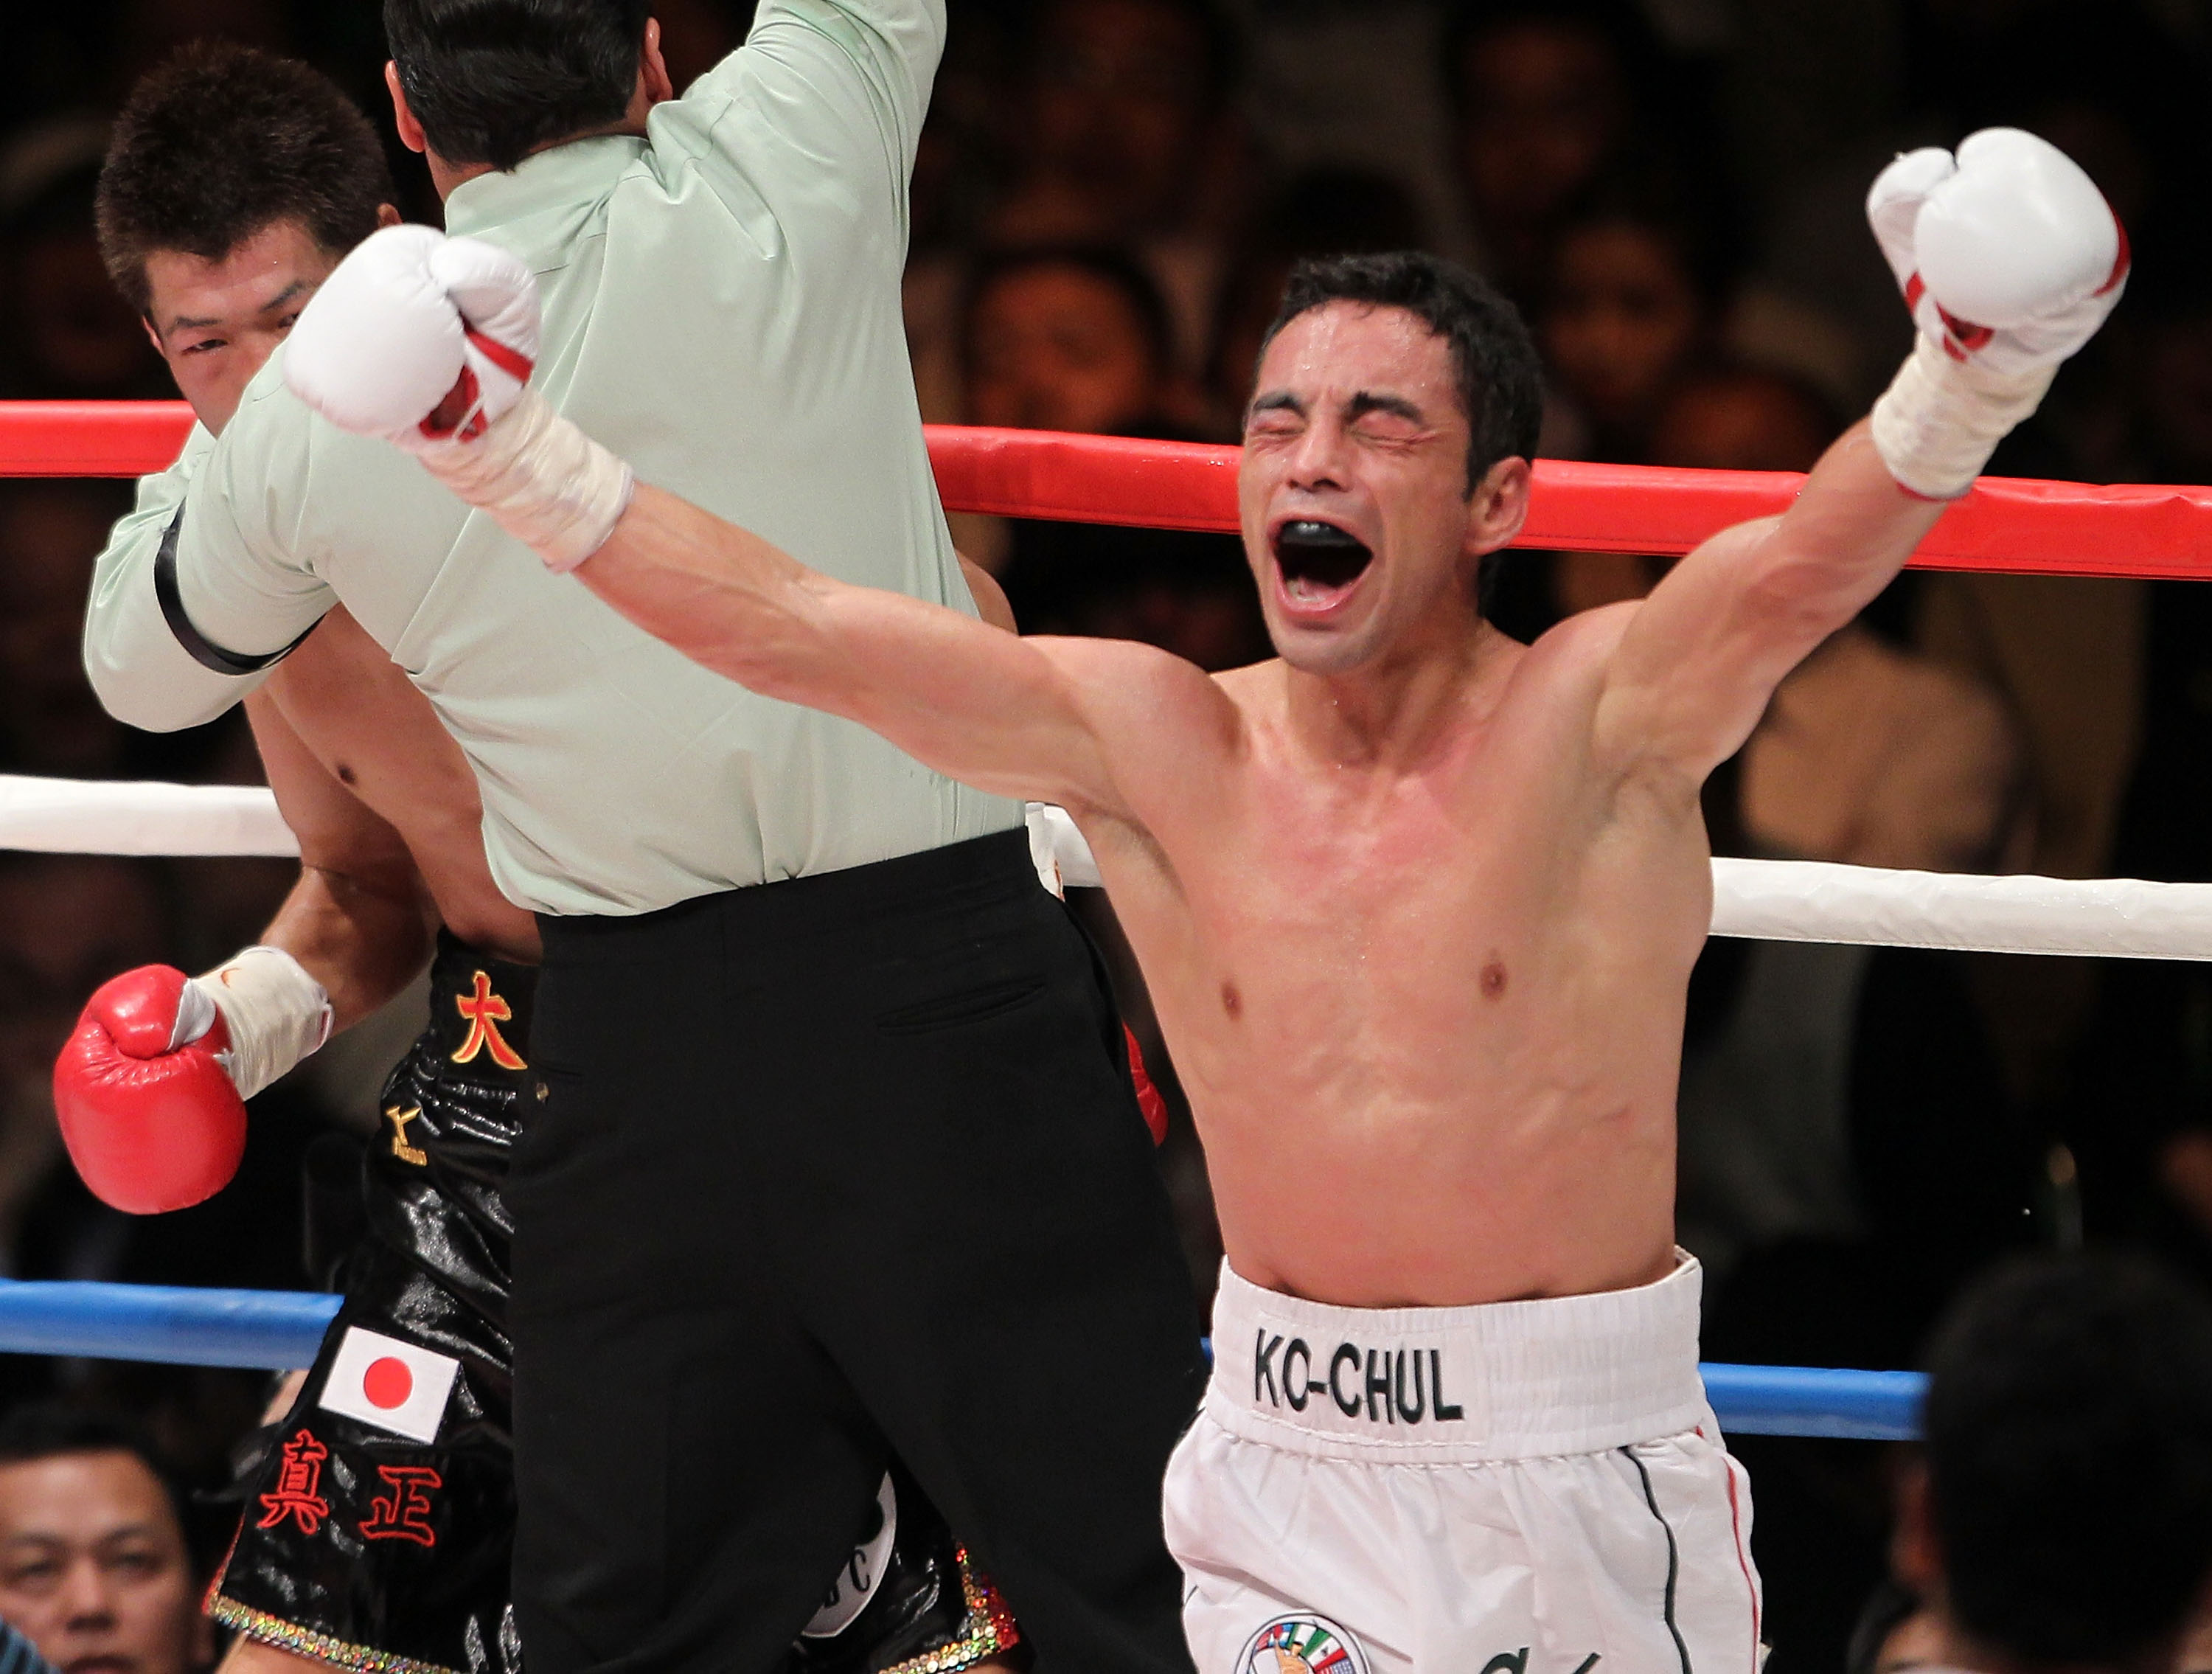 TOKYO - APRIL 30:  Fernando Montiel of Mexico celebrates after knocking out Hozumi Hasegawa of Japan during the WBC Bantamweight Title Fight between Hozumi Hasegawa and Fernando Montiel at Nippon Budokan on April 30, 2010 in Tokyo, Japan.  (Photo by Koich